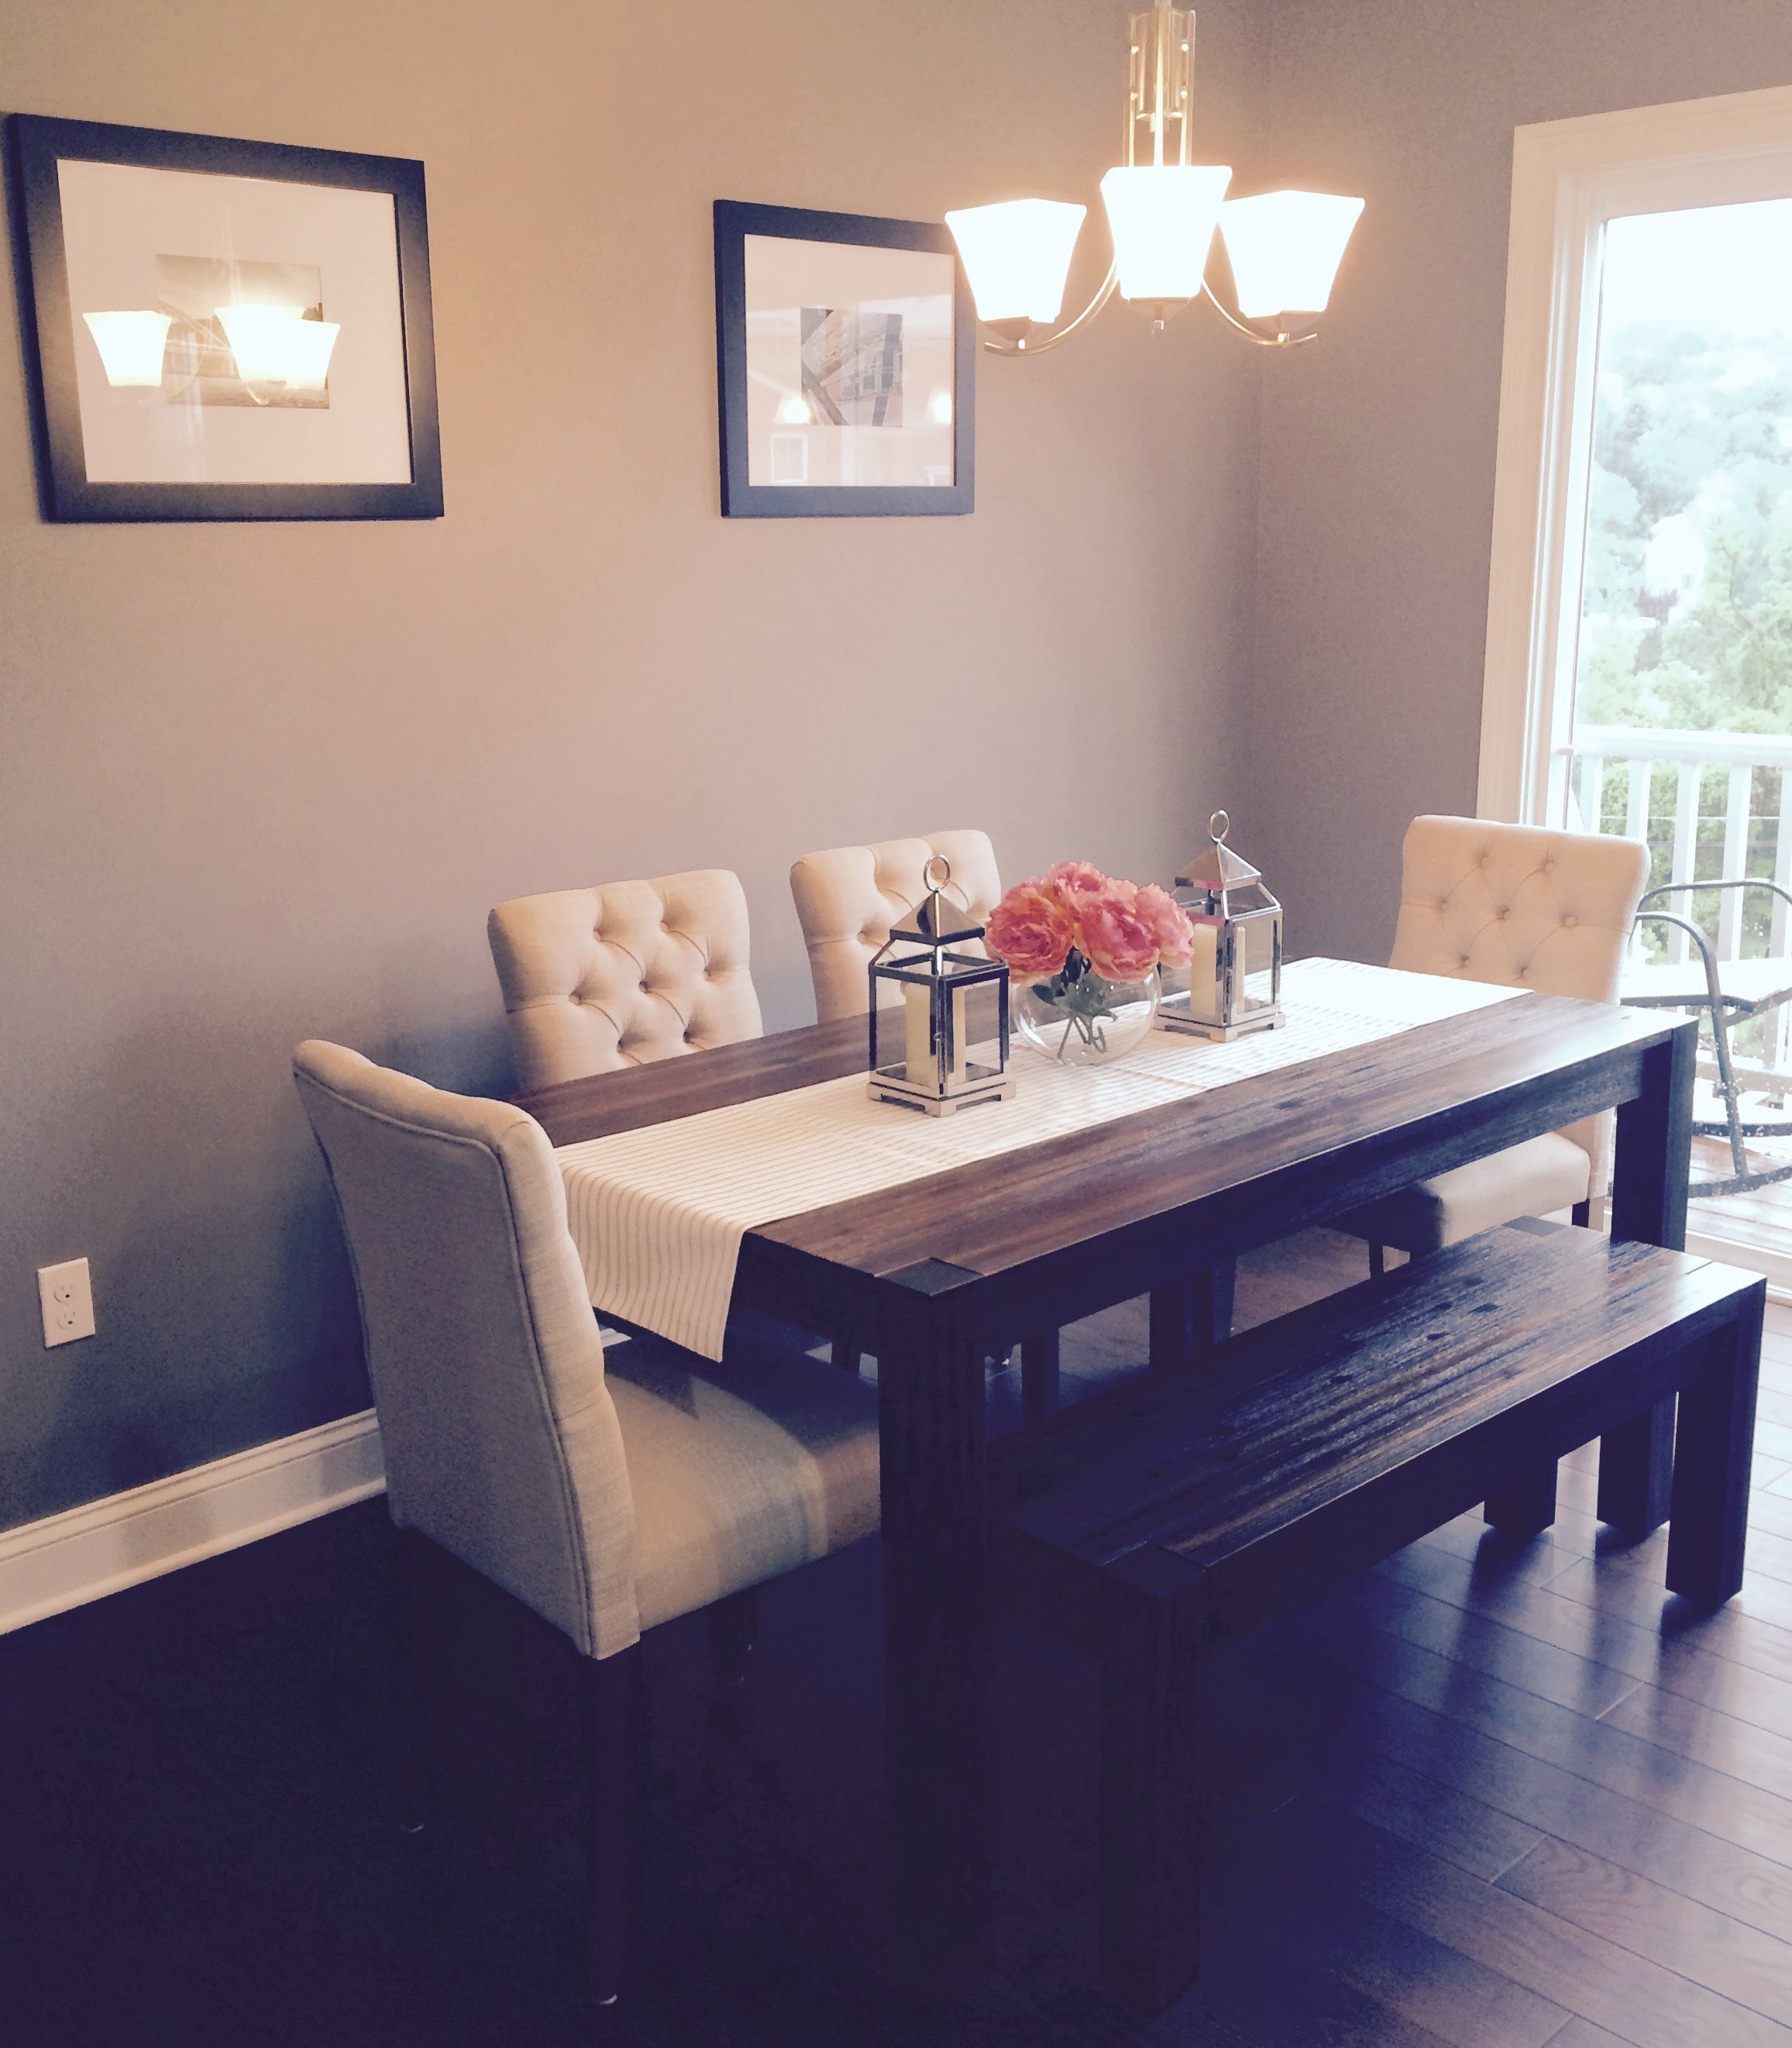 46 Cozy Dining Room Table Decor Ideas The Dining Room Table Is